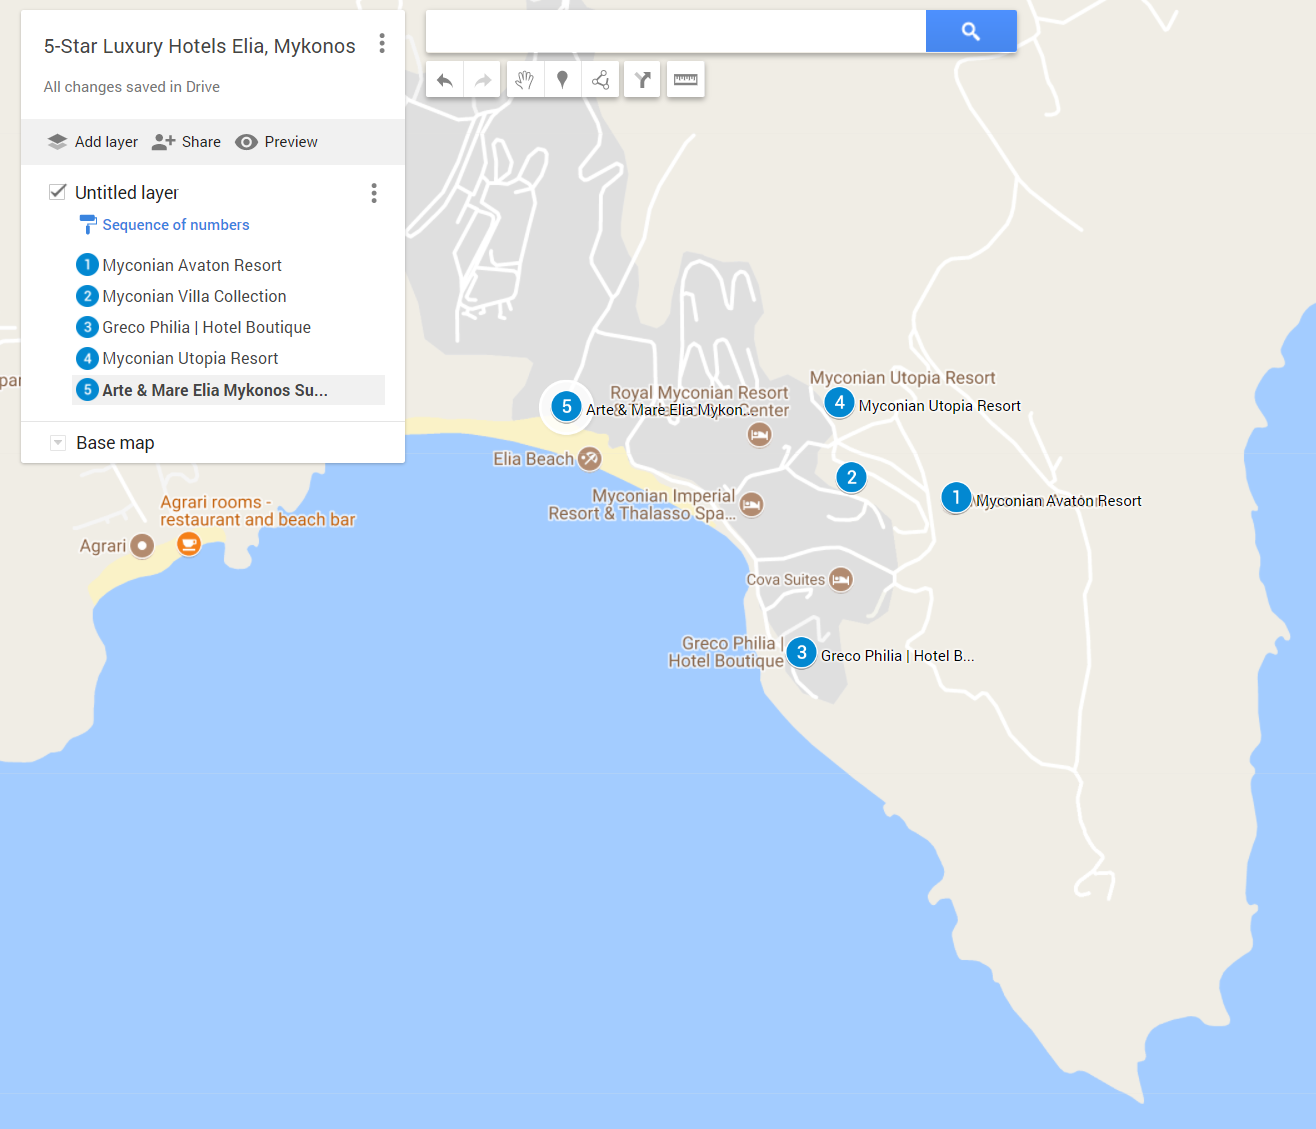 The locations of all the 5-star luxury hotels in Elia, Mykonos on google maps